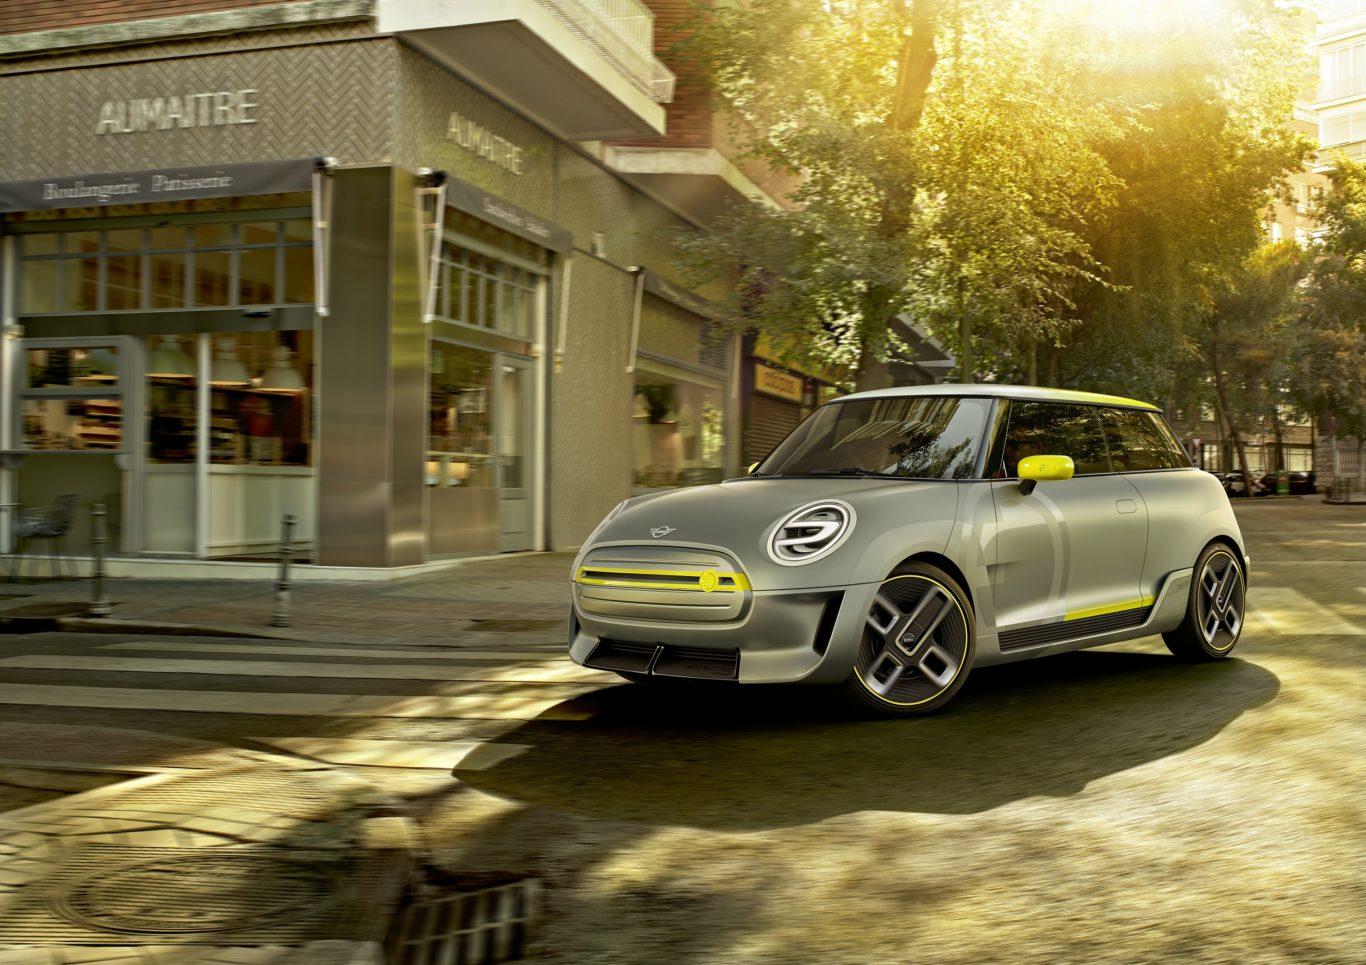 The new Mini EV is an all-electric take on the popular hatch